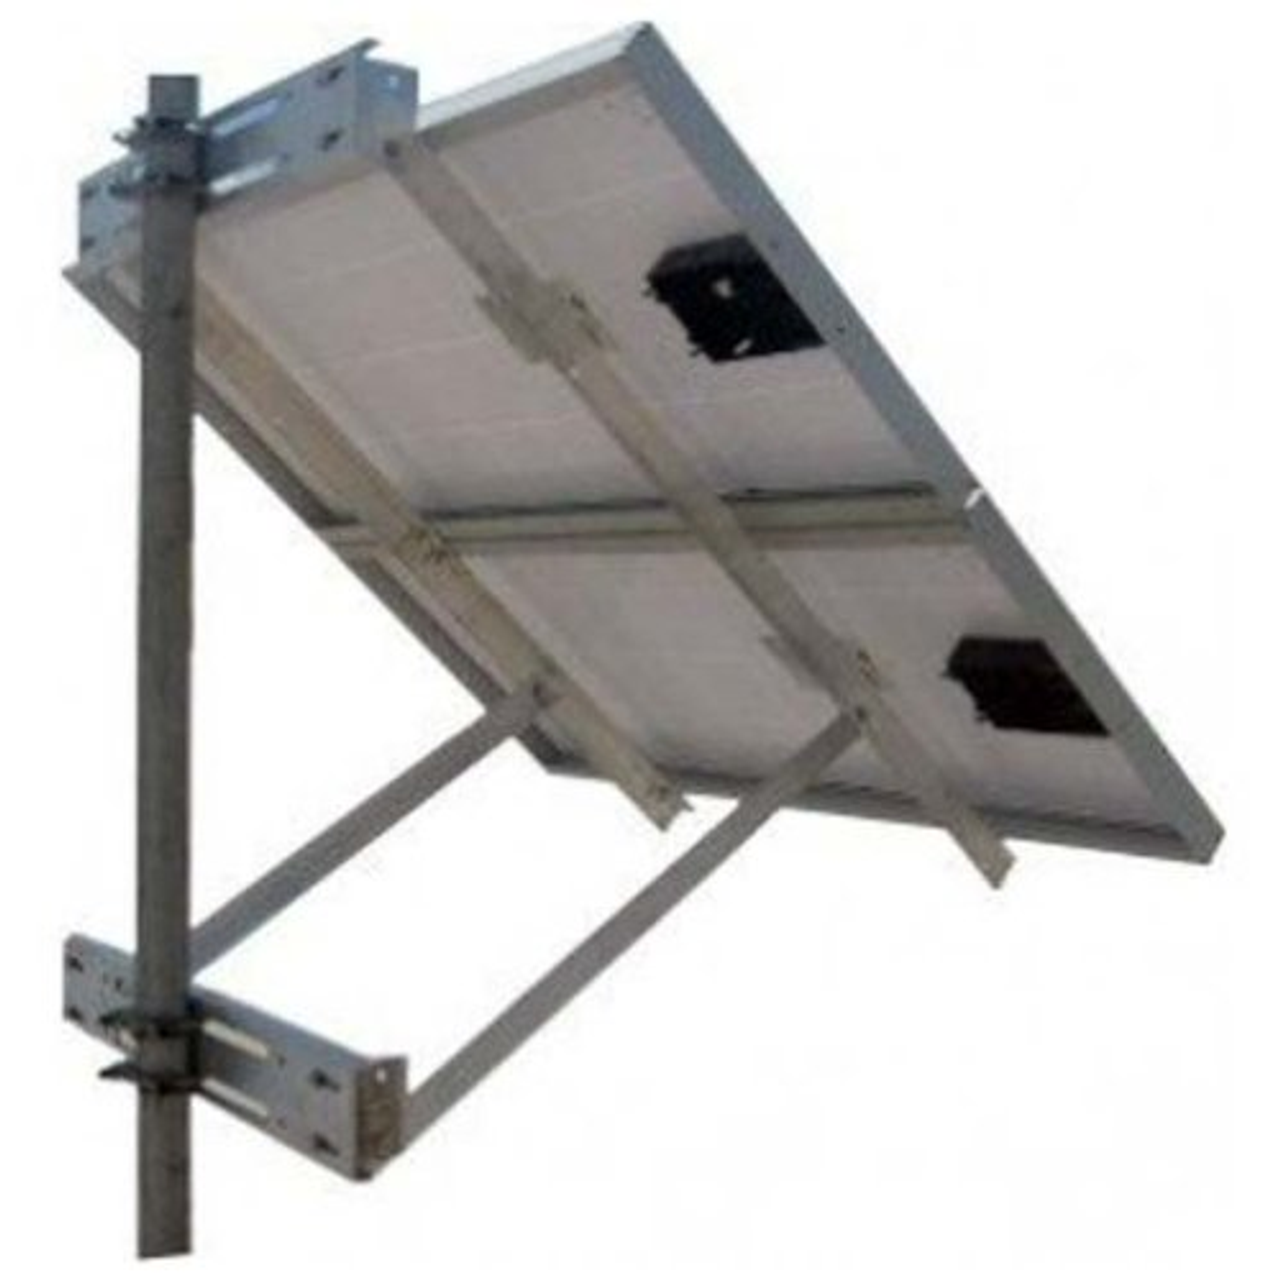 "SunWize Adjustable Side-of-Pole Mount, 60"" Support"